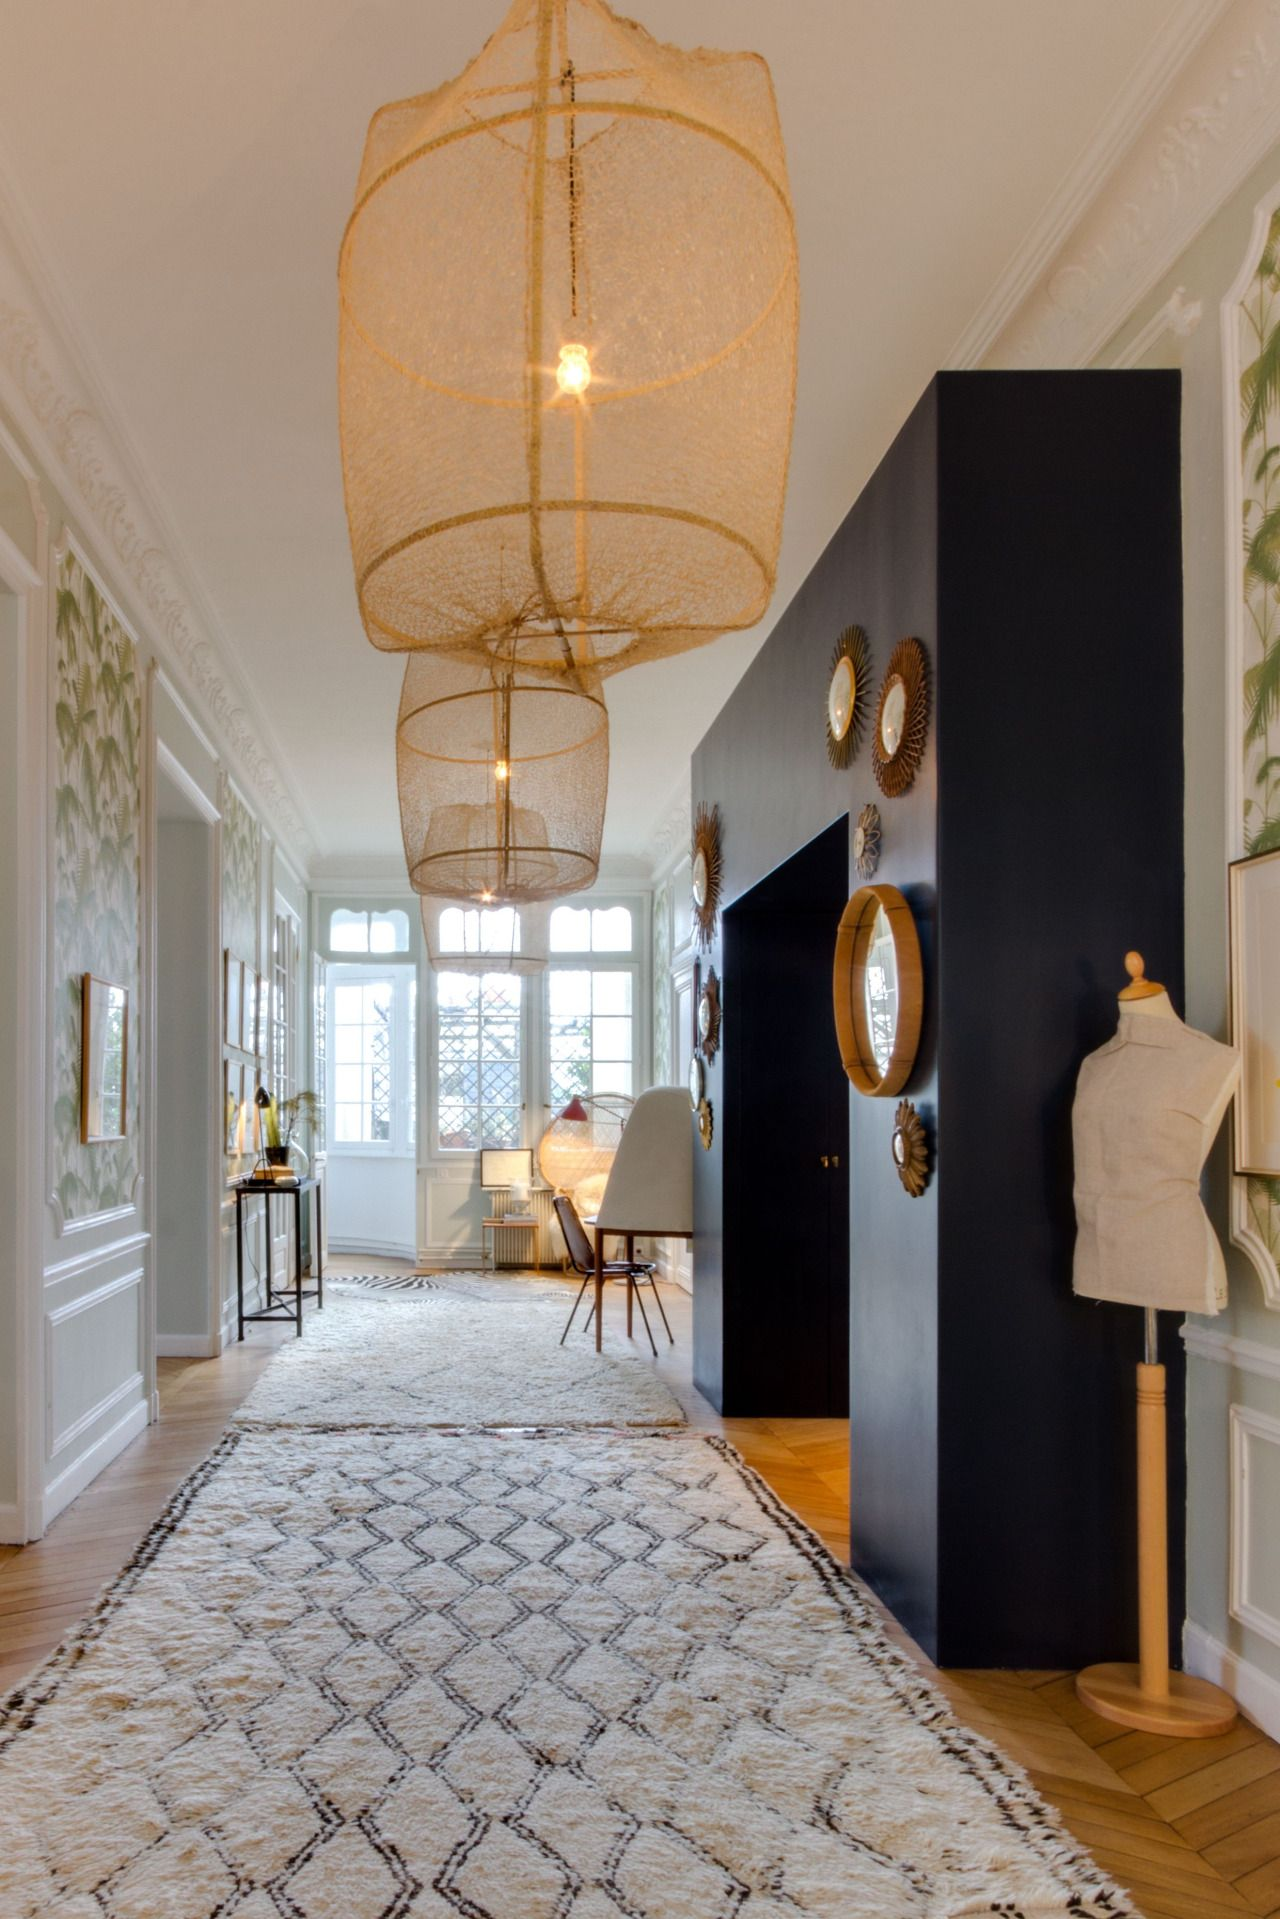 stylish-homes: The hallway of an apartment in... - Creative Houses ...